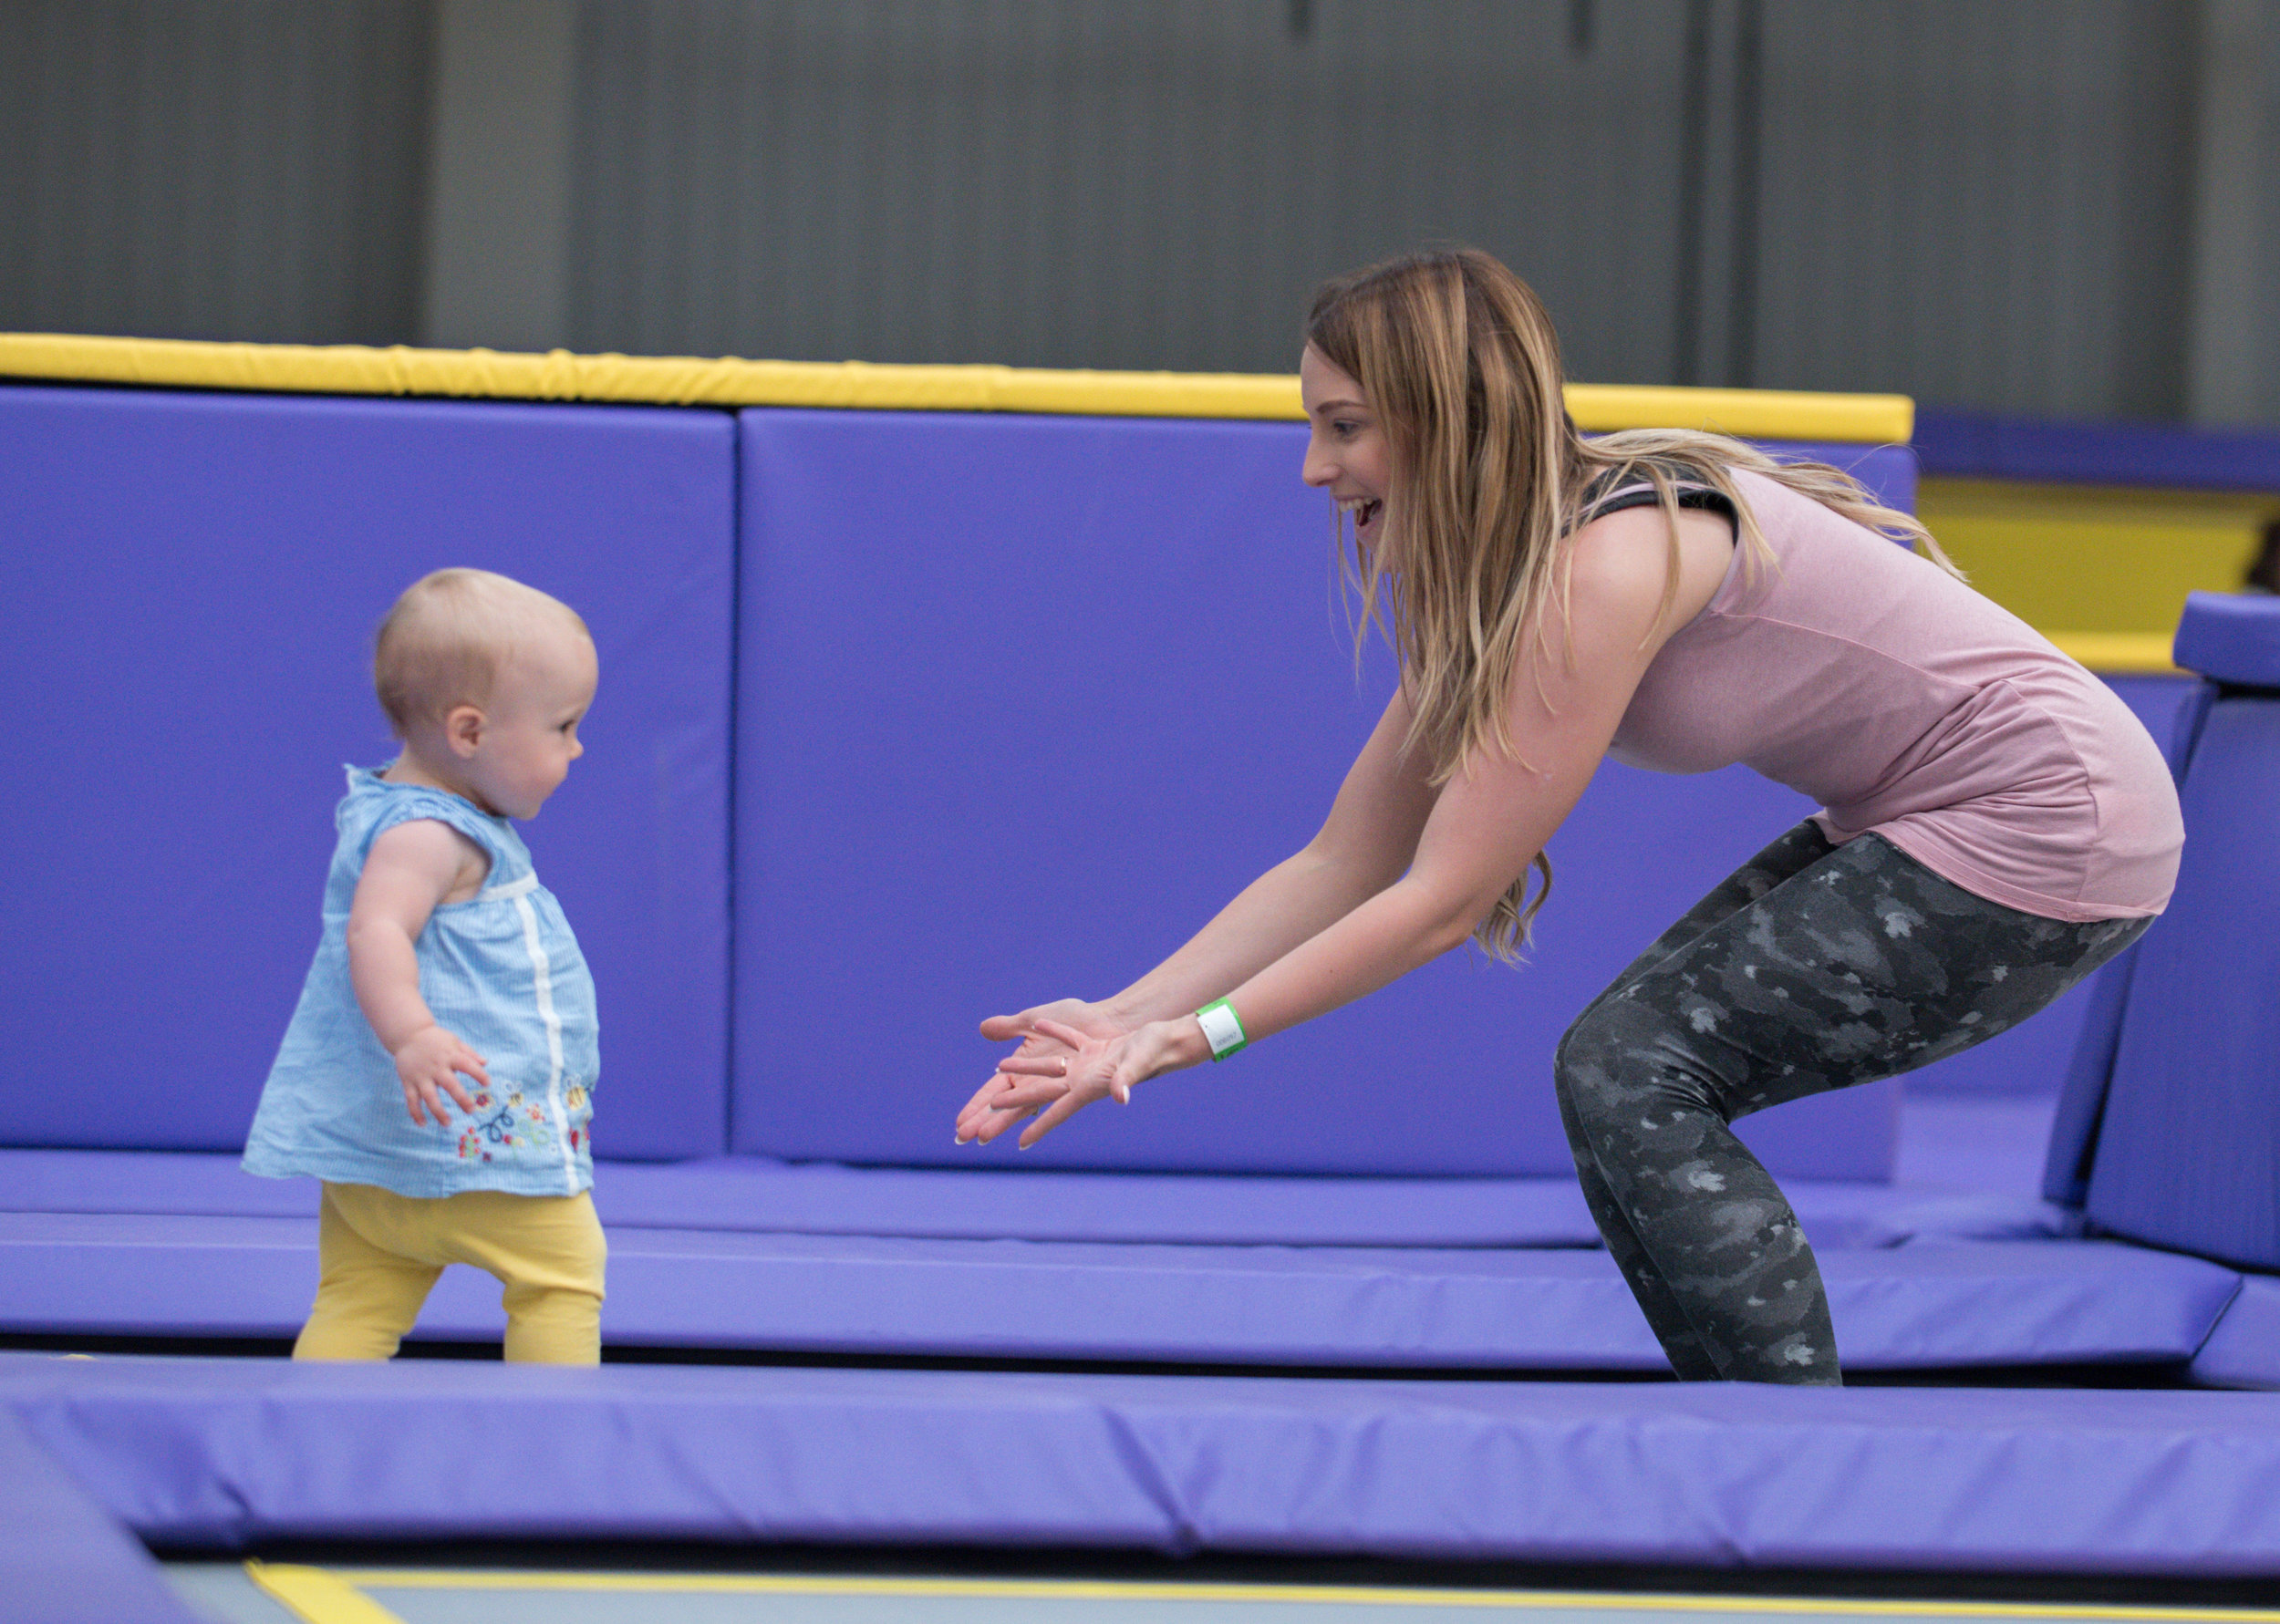 Soft play area for babies and toddlers